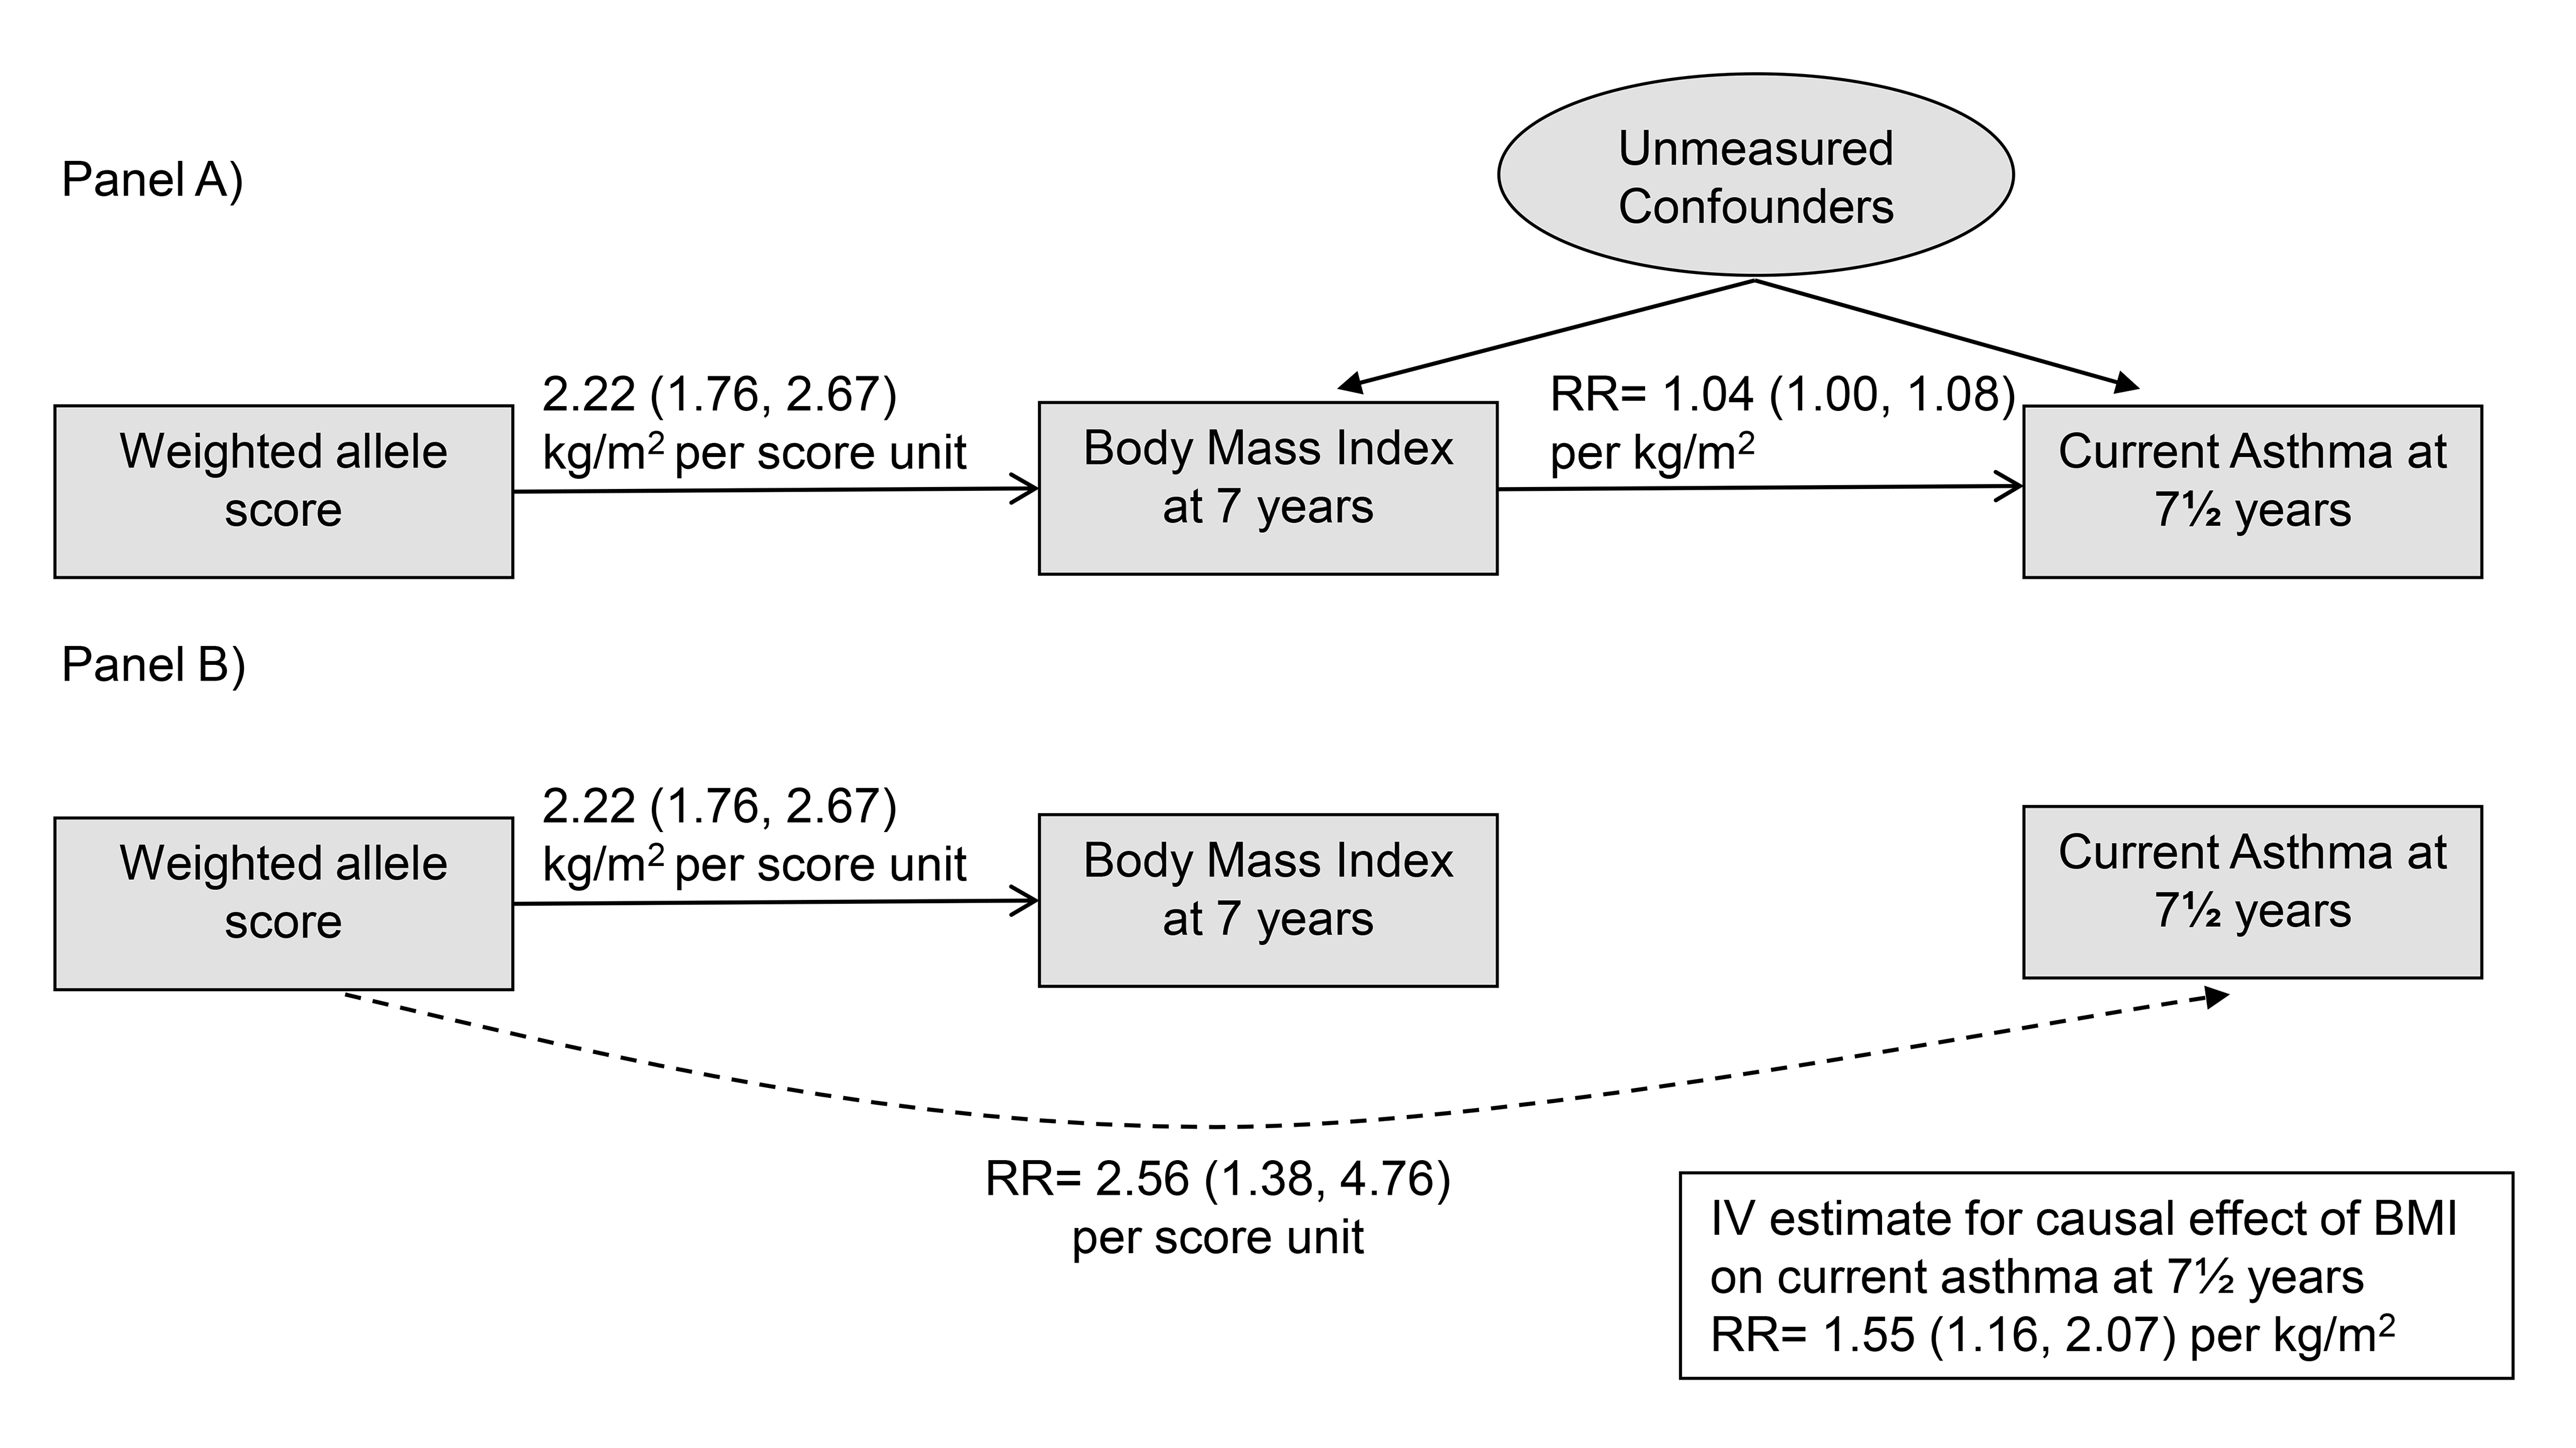 Main Mendelian randomization features and results of the study.